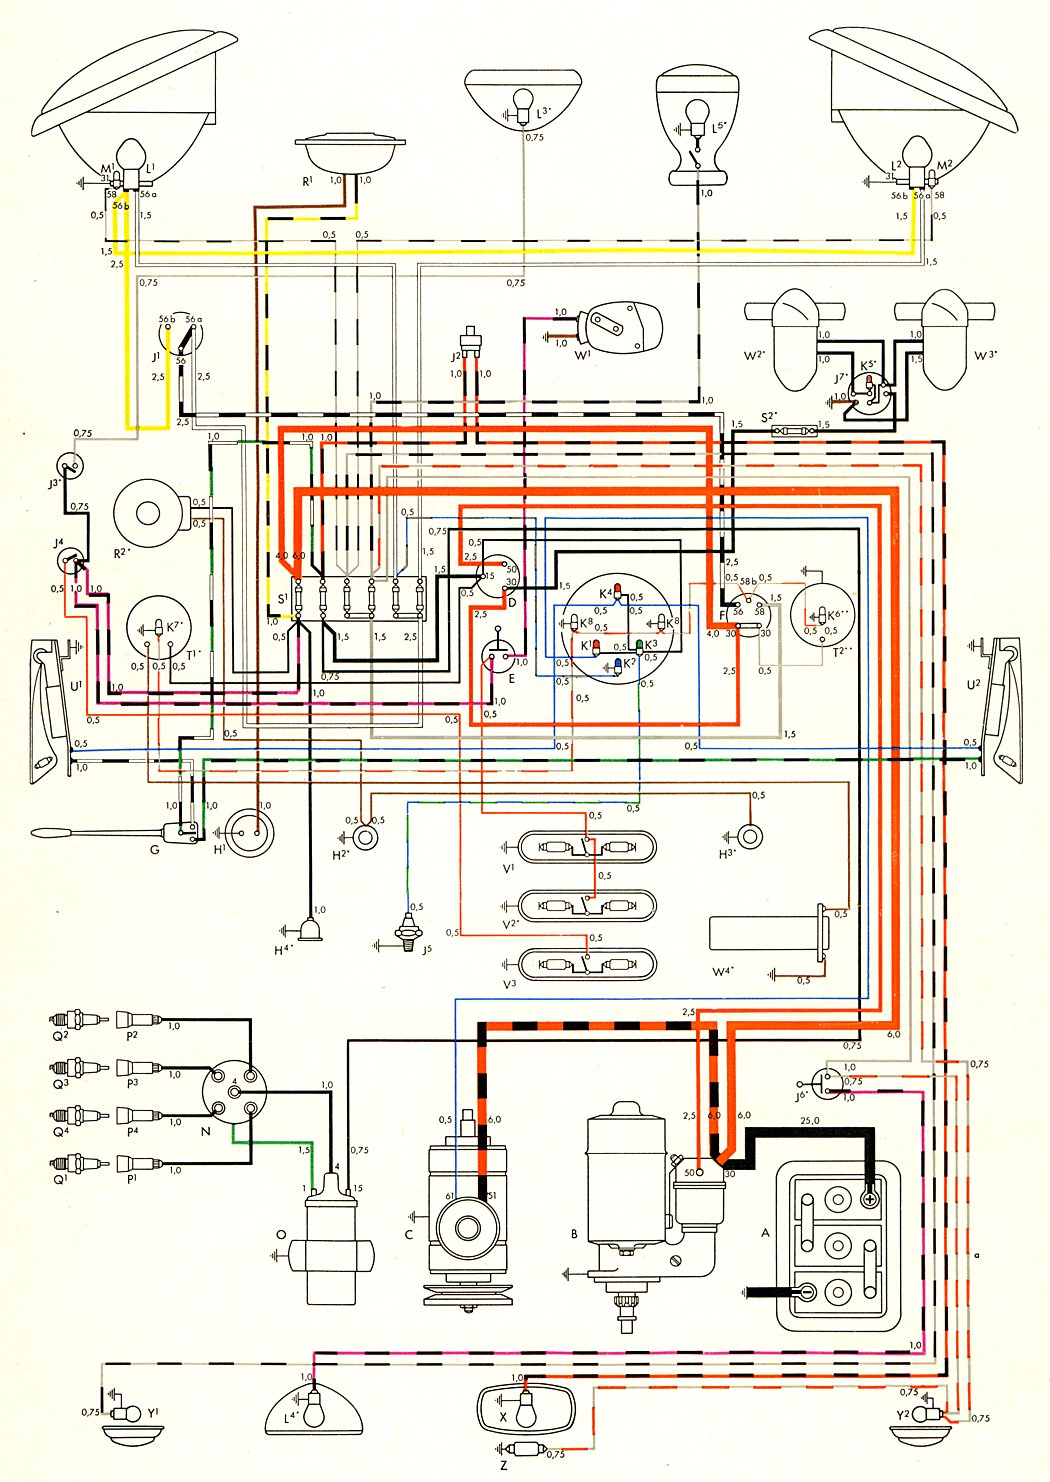 1970 beetle wiring diagram headlight wire vw bug engine free image for user